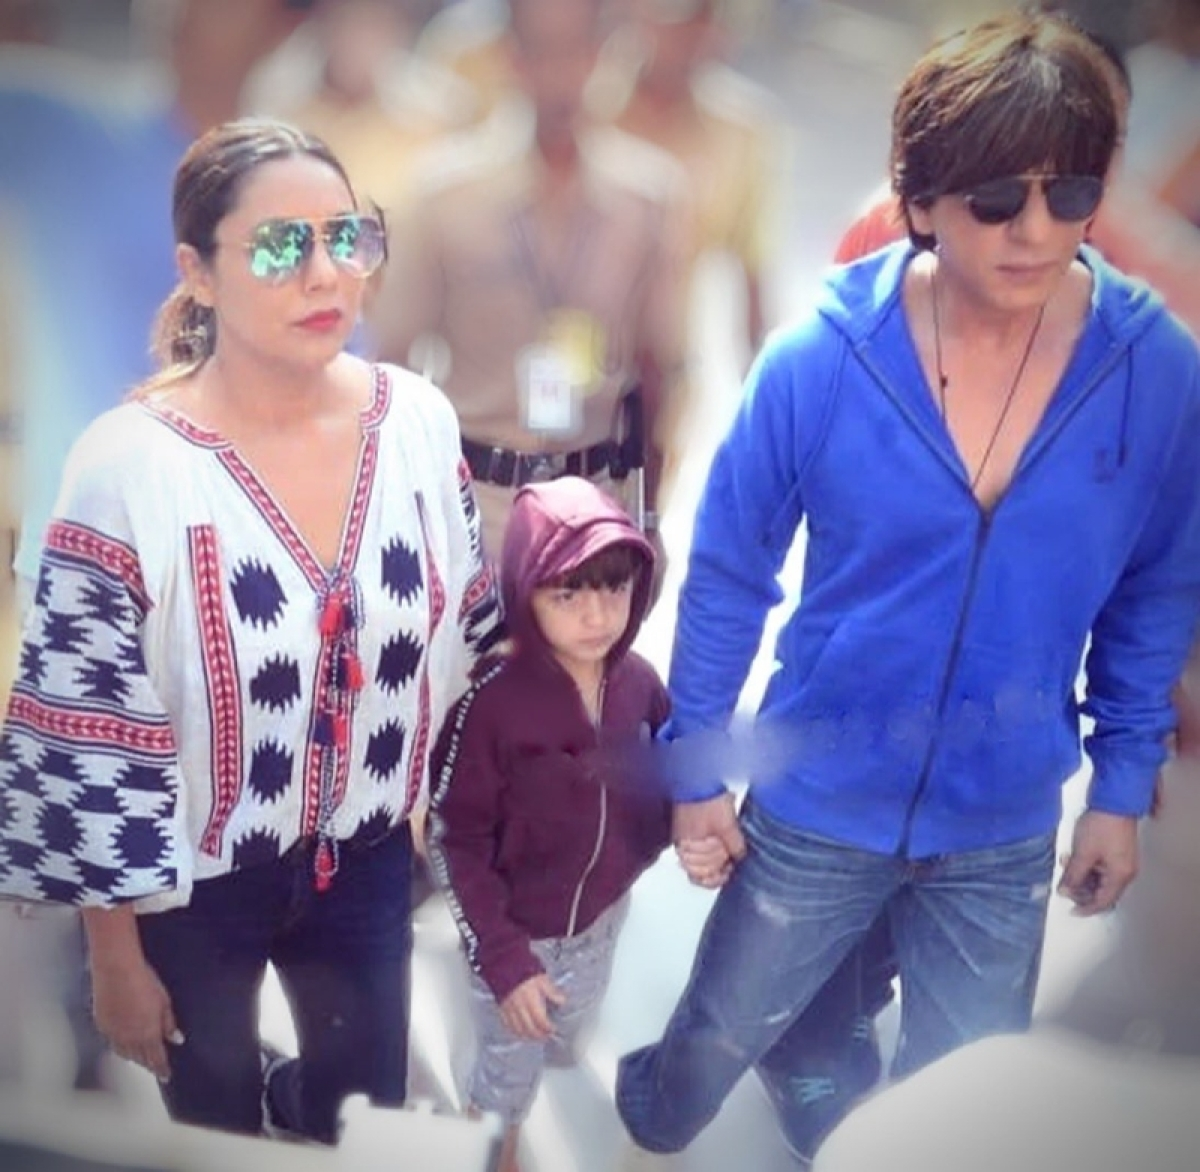 Shah Rukh Khan shows AbRam difference between boating and voting